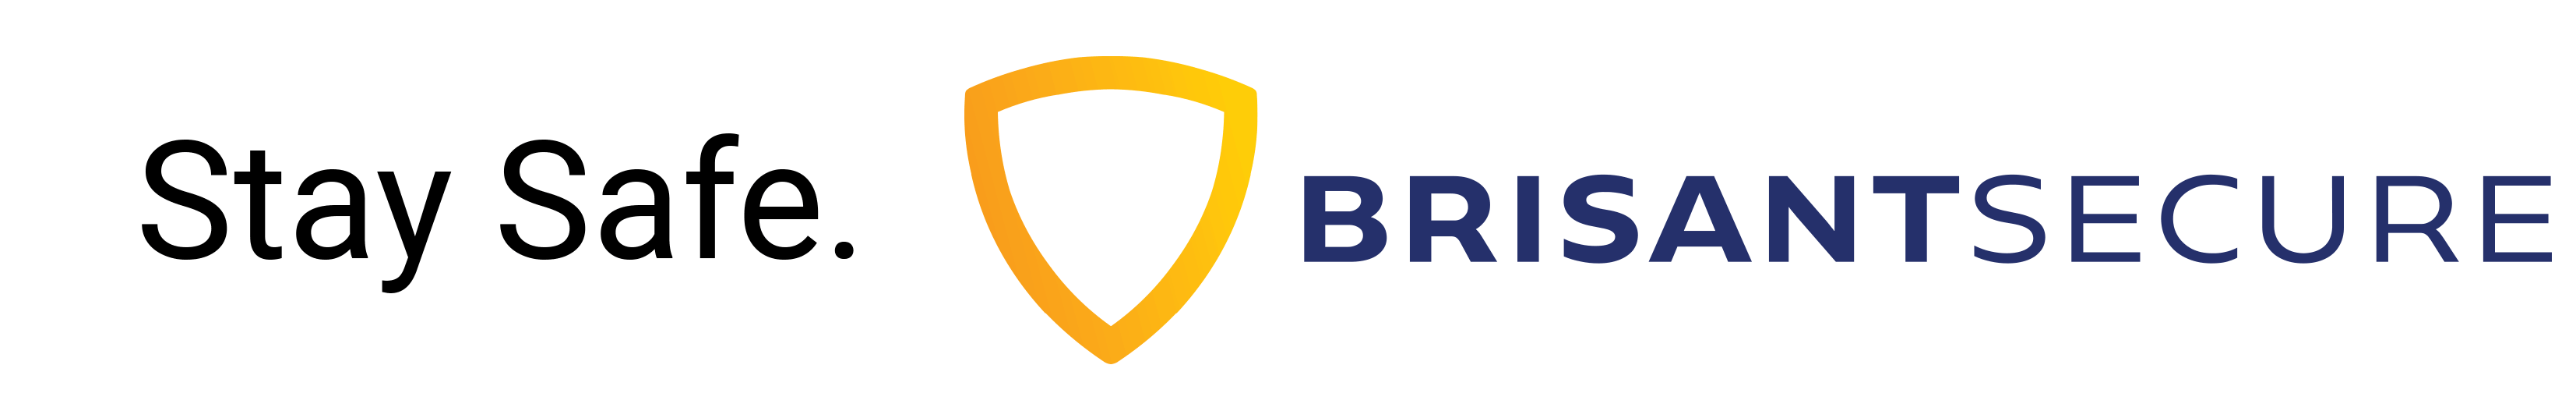 Stay Safe. Brisant-Secure.